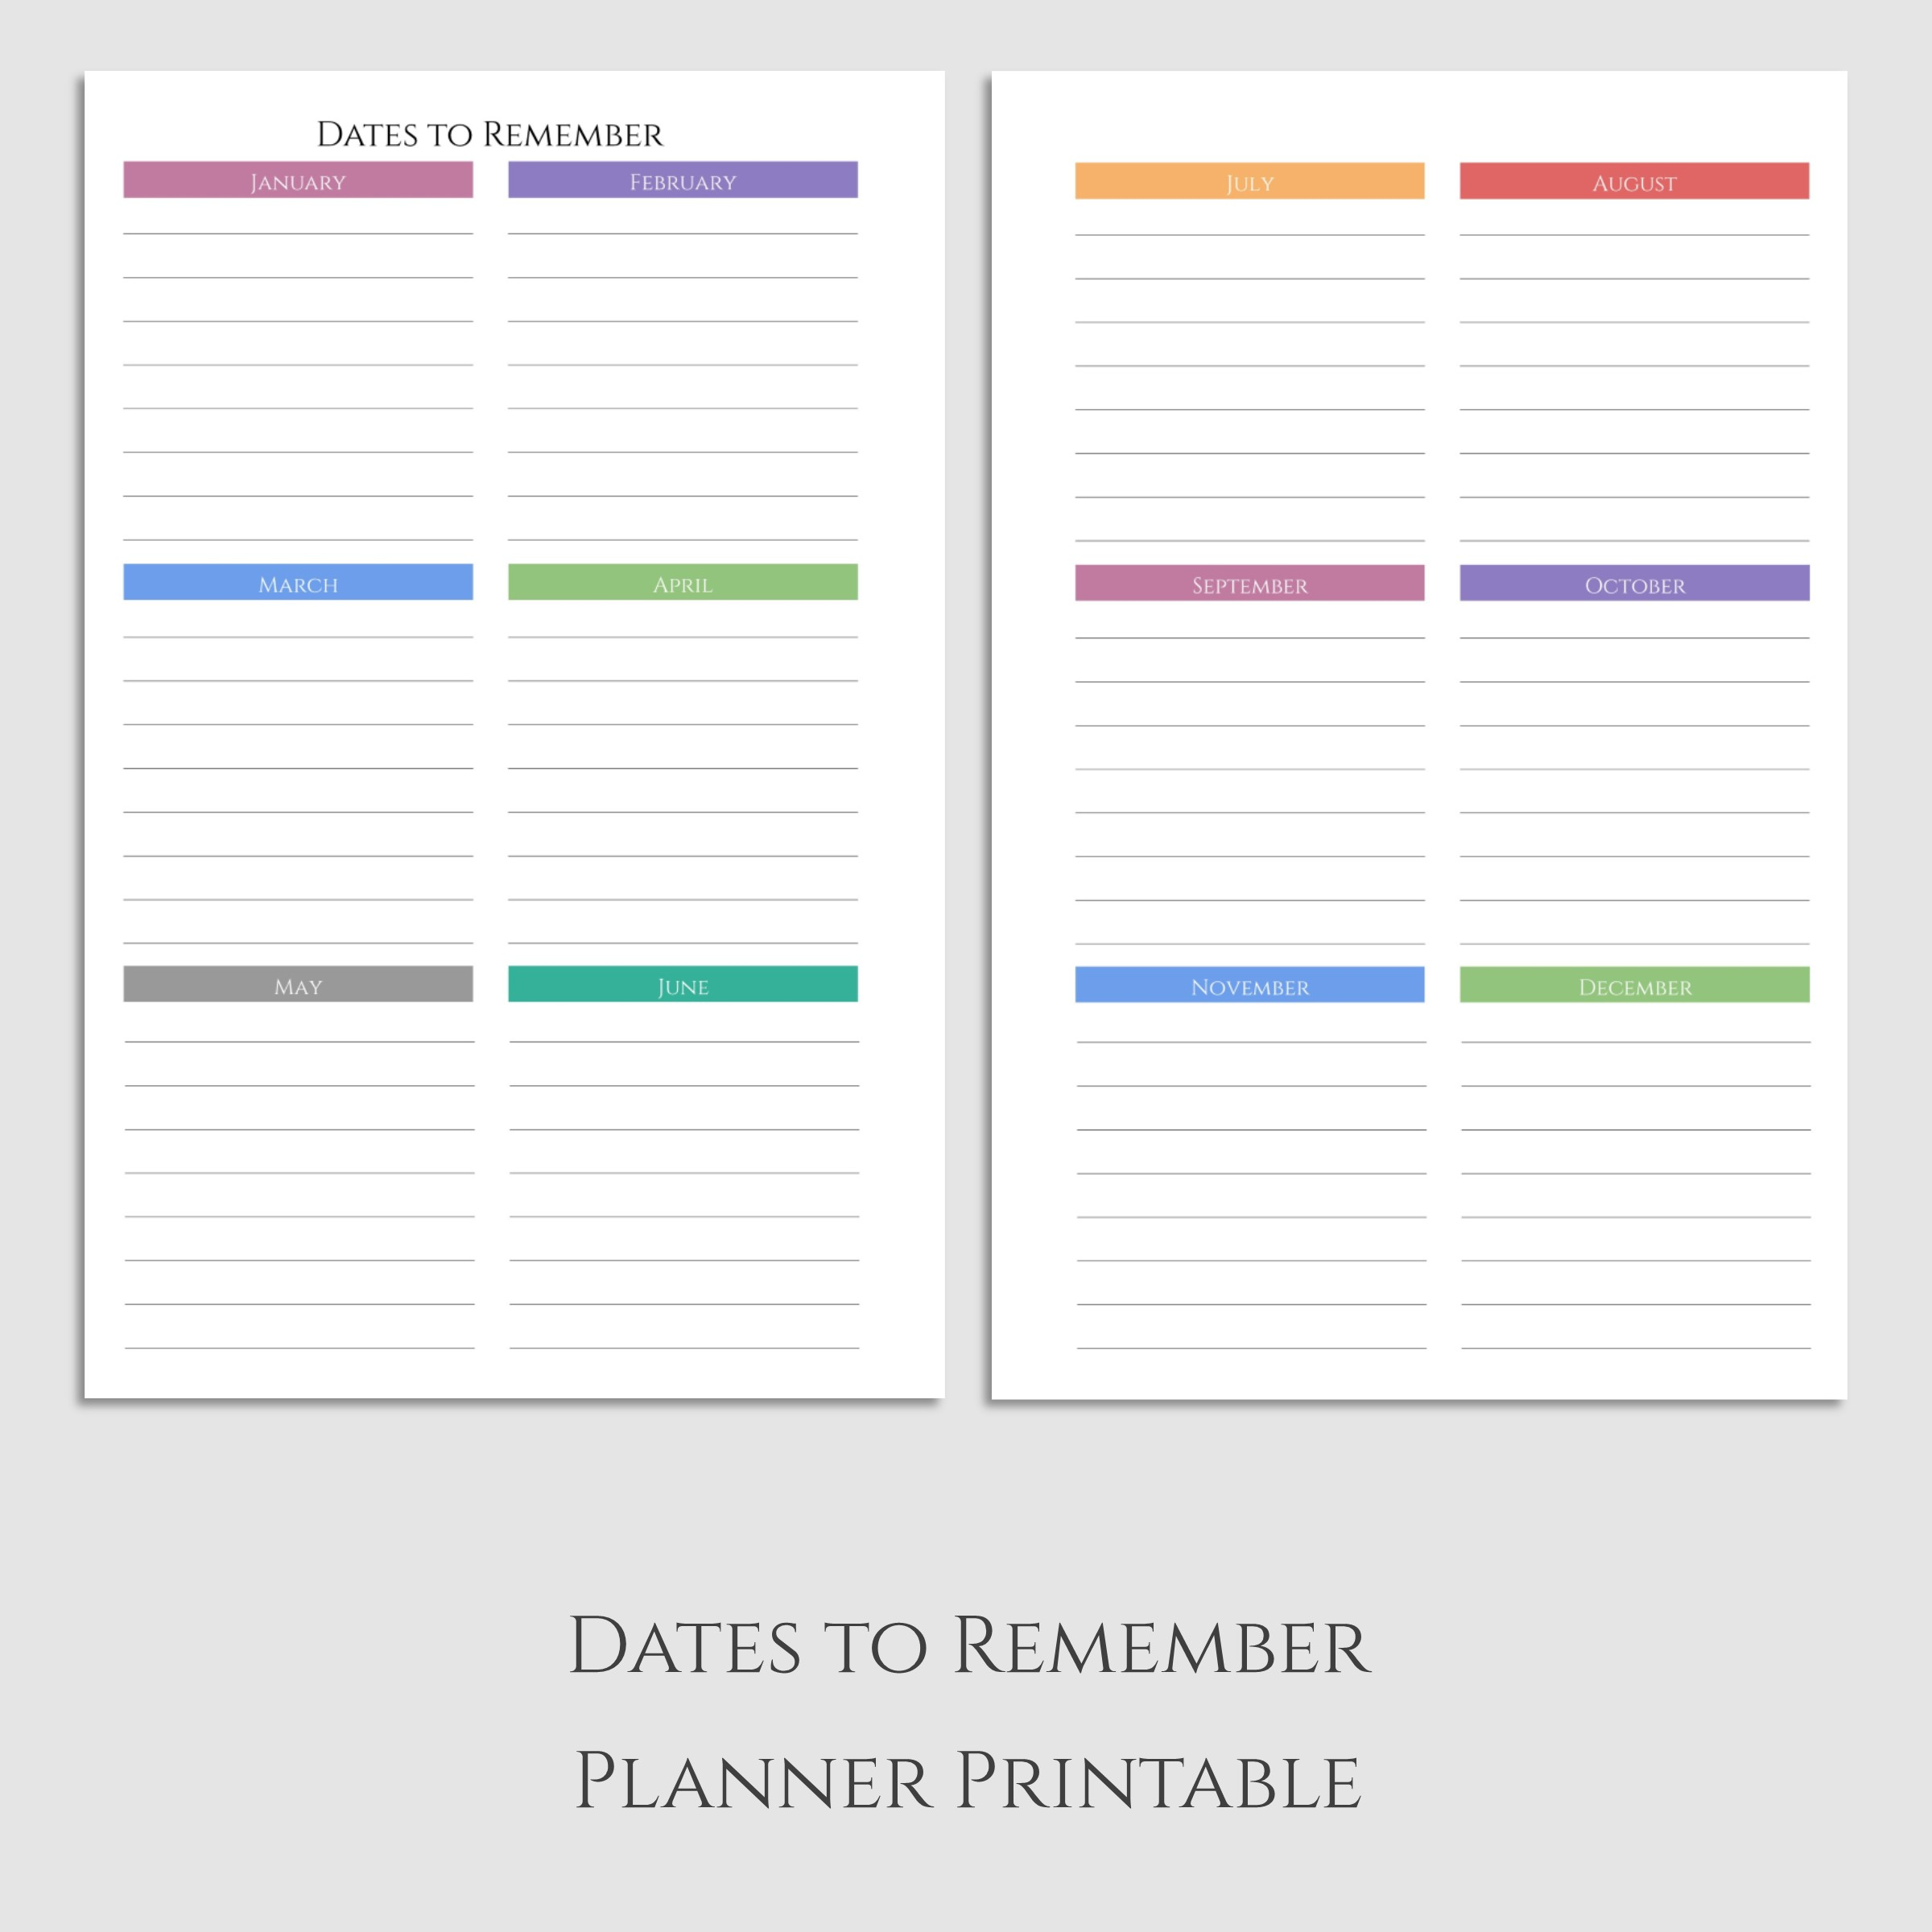 Dates to Remember Half Letter Printable